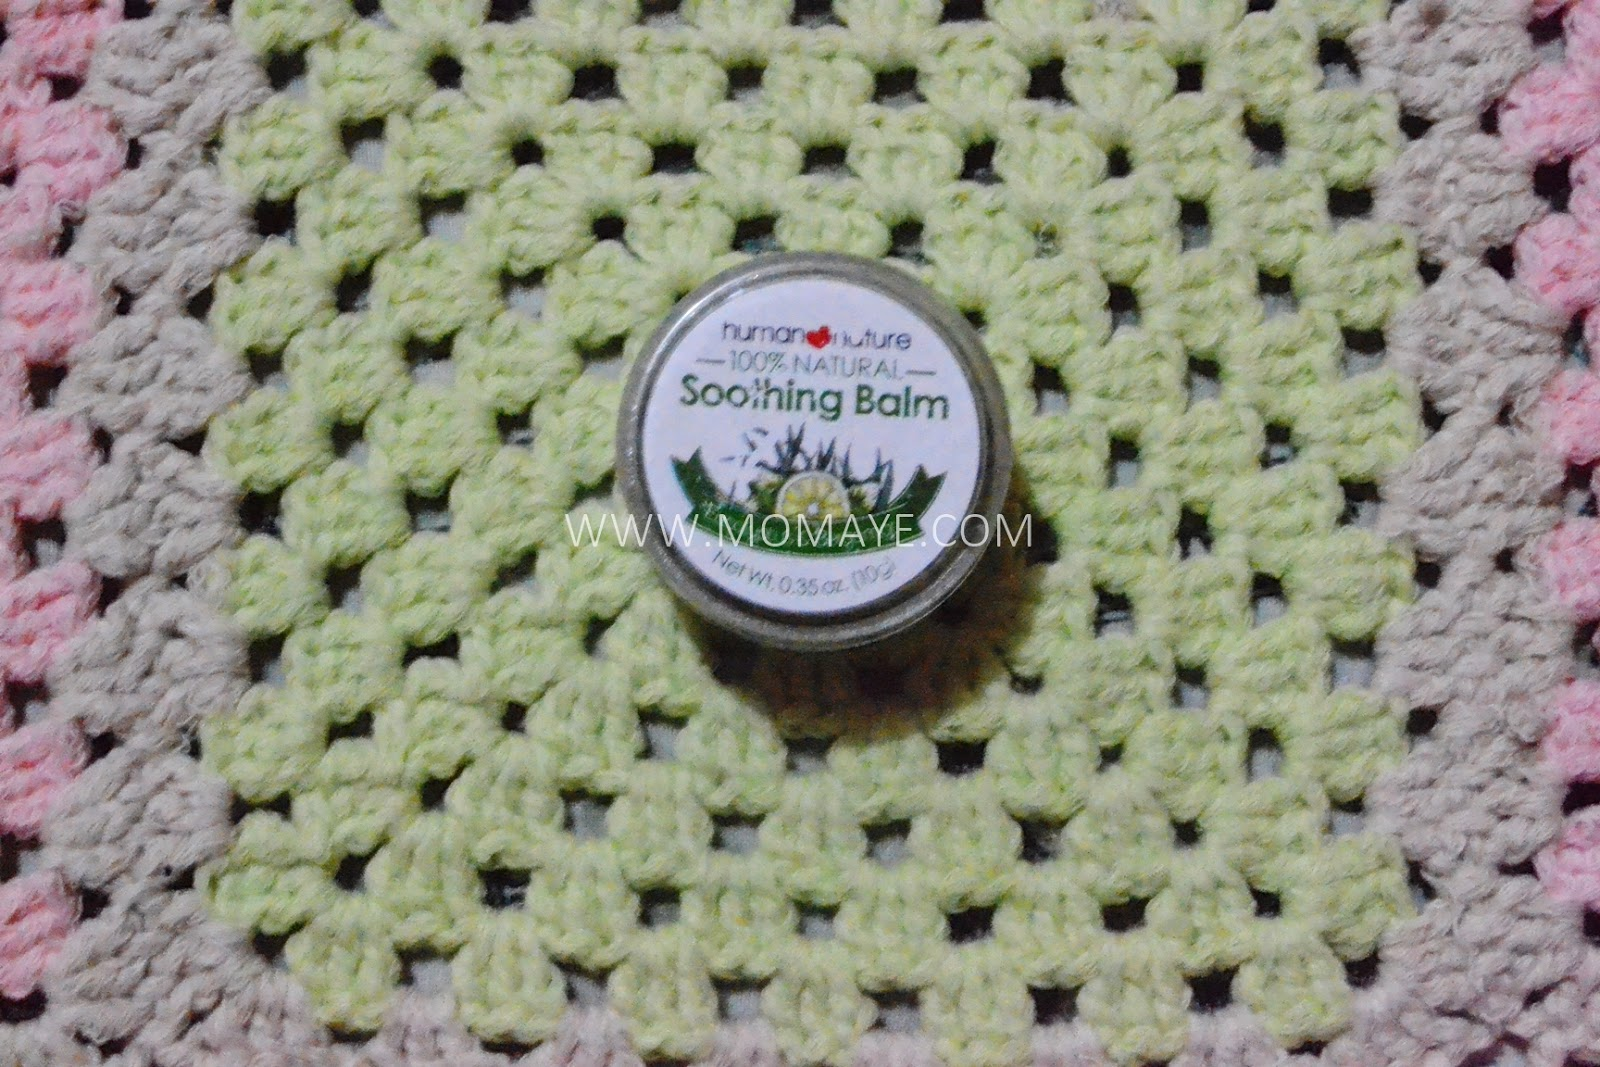 Soothing Balm Human Nature